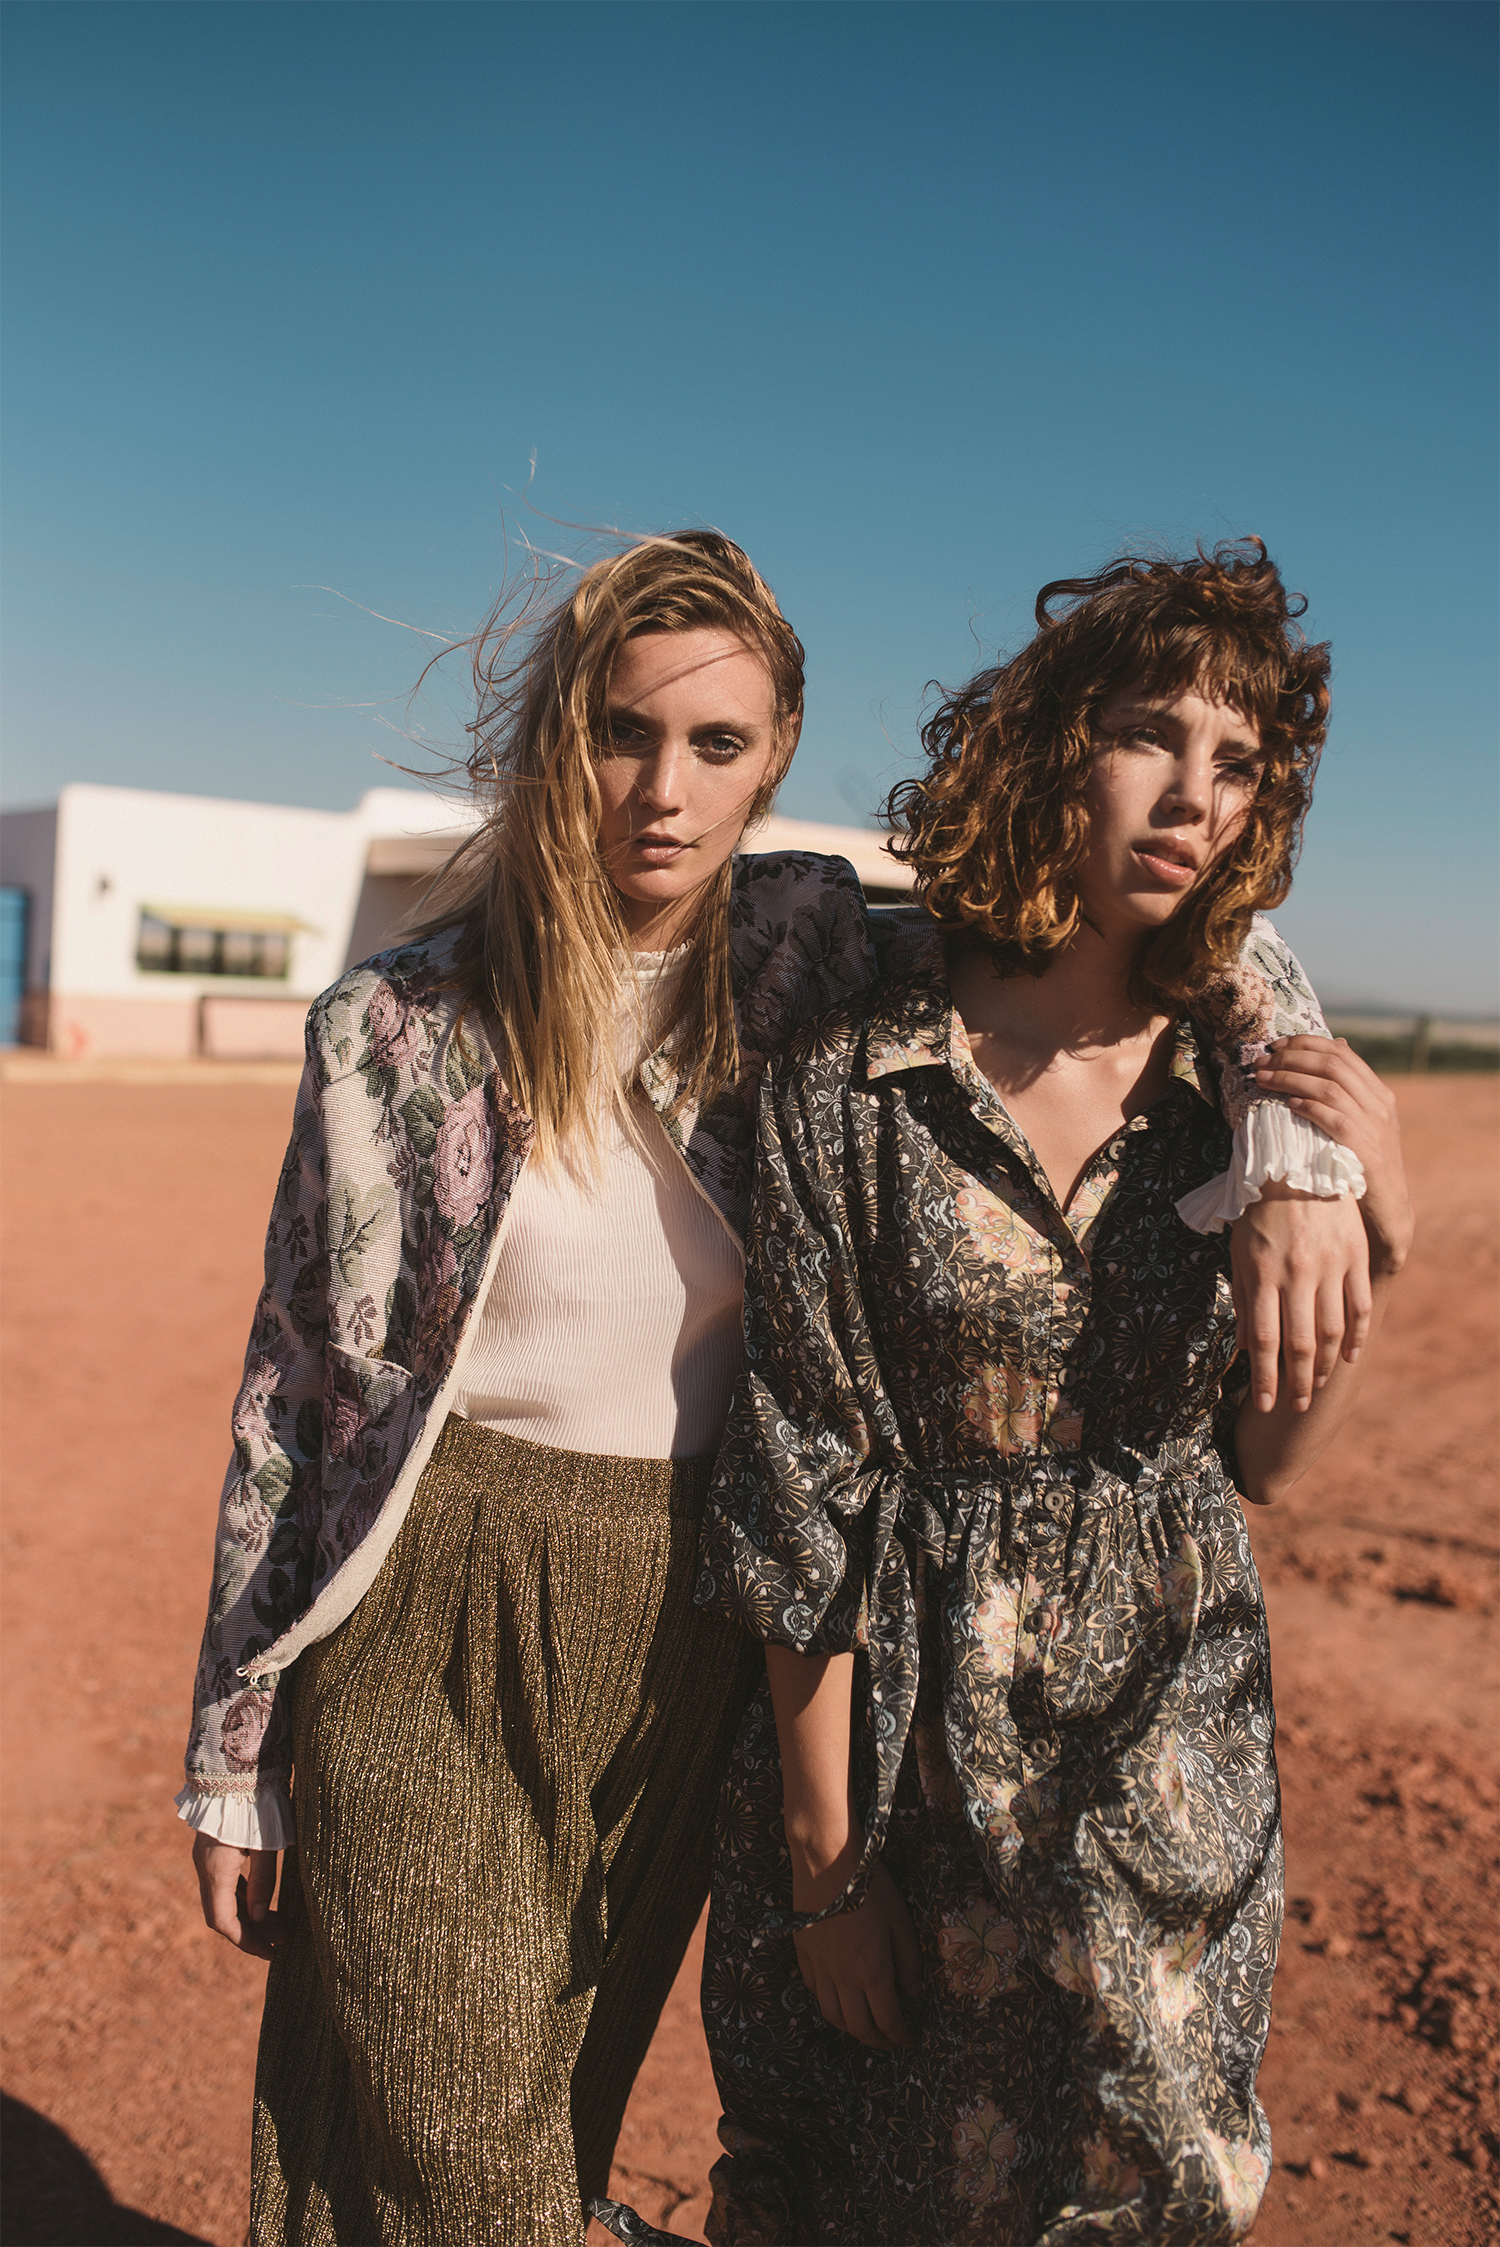 Emma (left)wears:shirt, H&M; jacket,Babette; trousers, stylist's own |Francesca (right) wears: dress, Amanda Laird Cherry at The Space